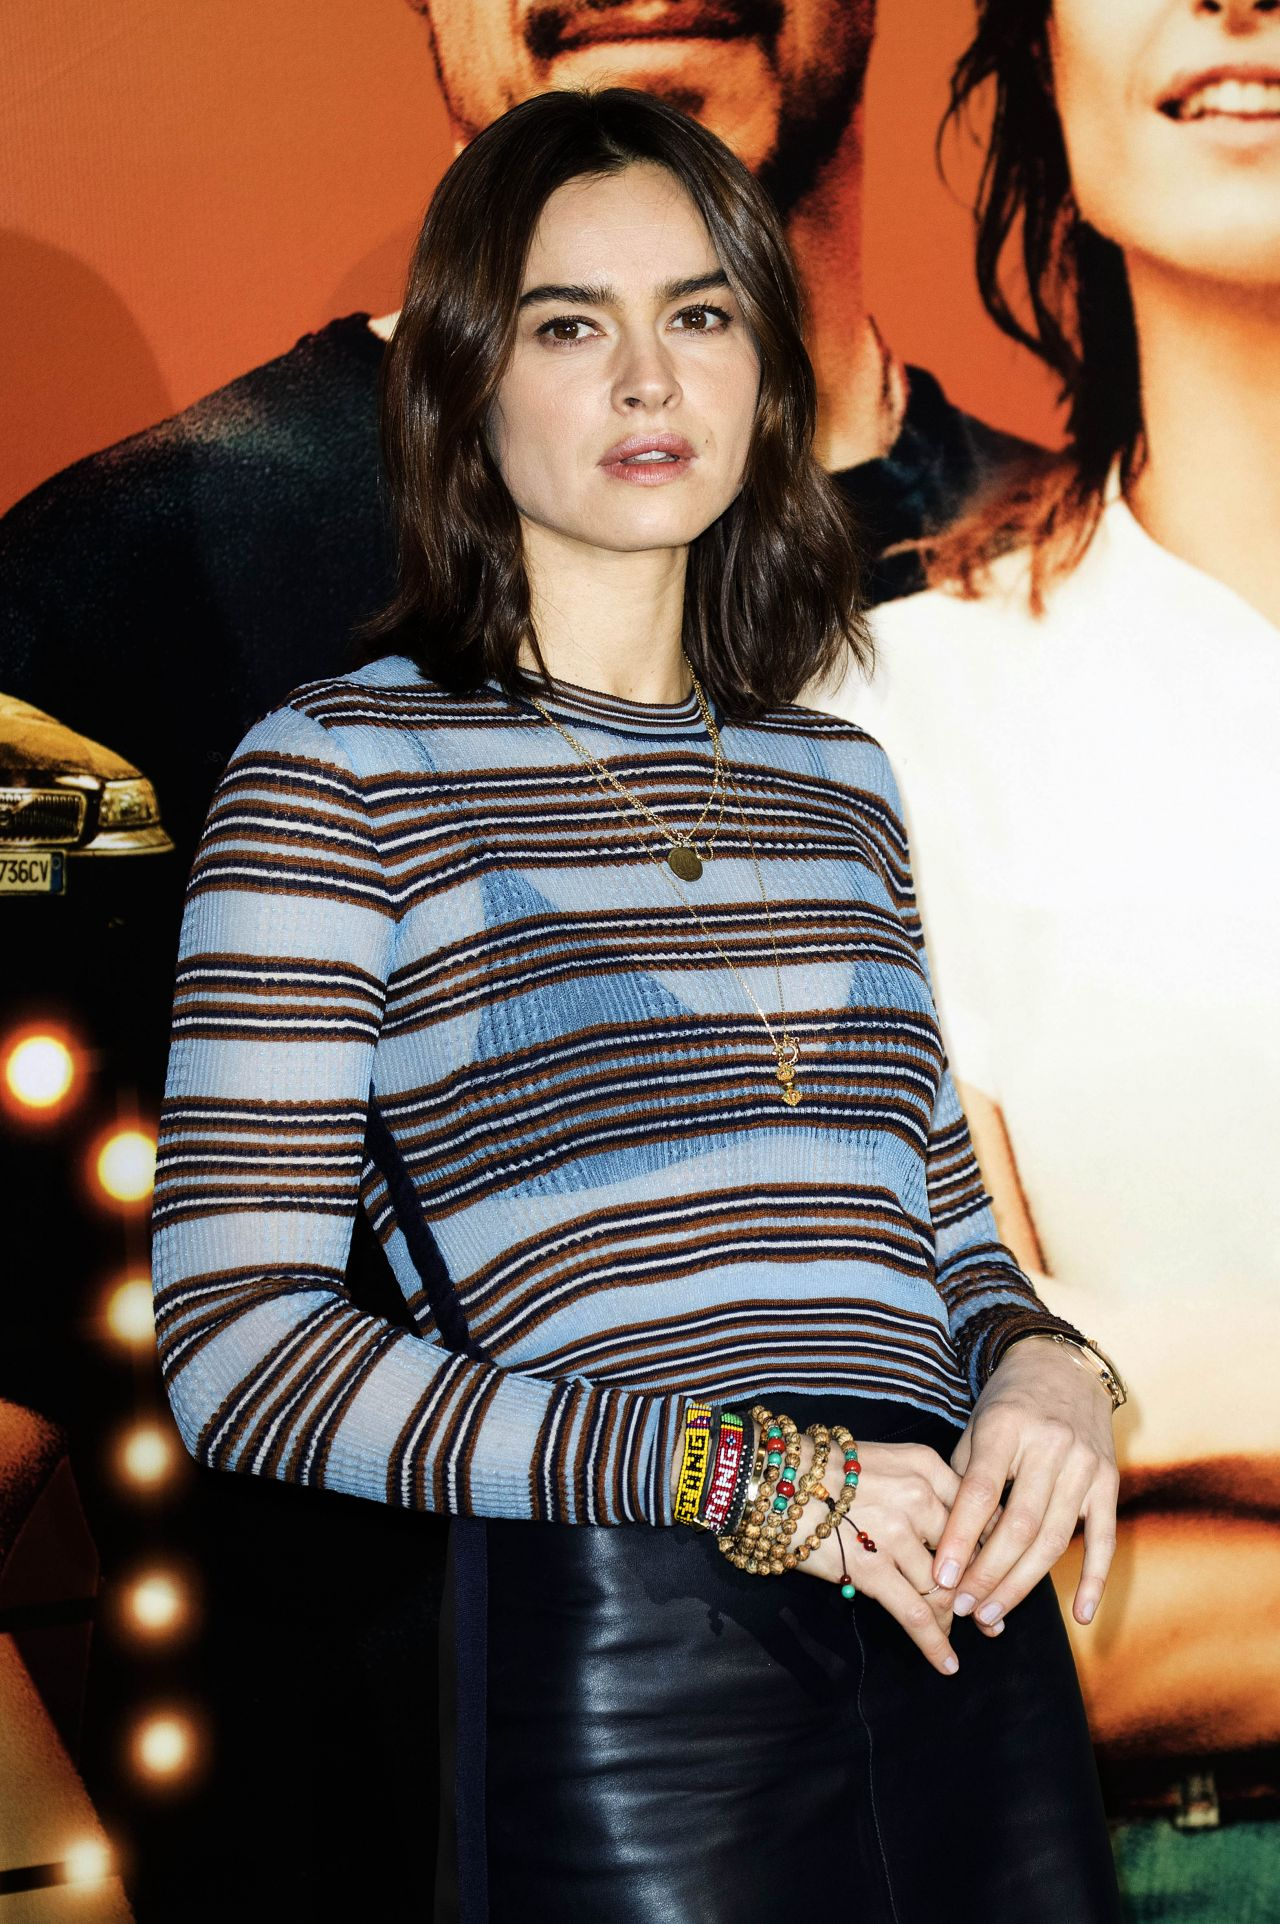 Kasia Smutniak Quot Made In Italy Quot Photocall In Rome